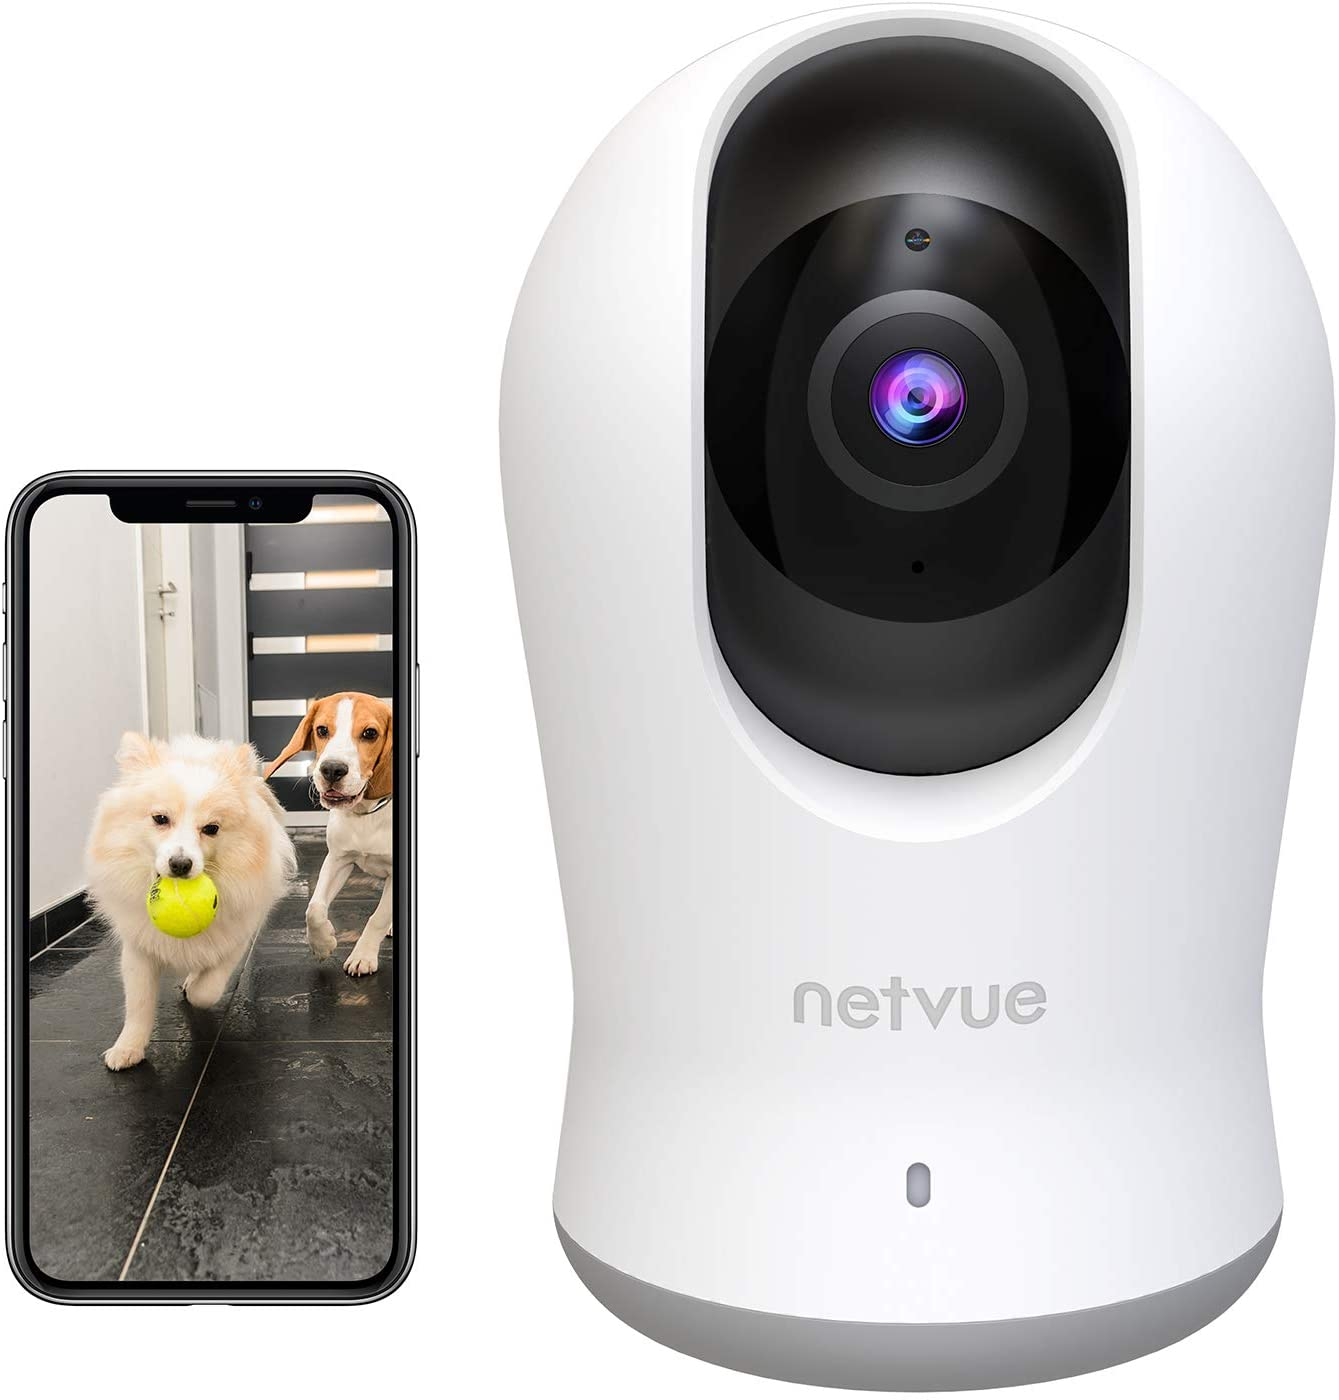 2K 3MP Indoor Camera,Cameras for Home Security Indoor,Dog Camera with H.265 Coding Technical,Netvue Indoor Camera,Indoor Security Camera with Phone App,AI Human Detection, Night Vision